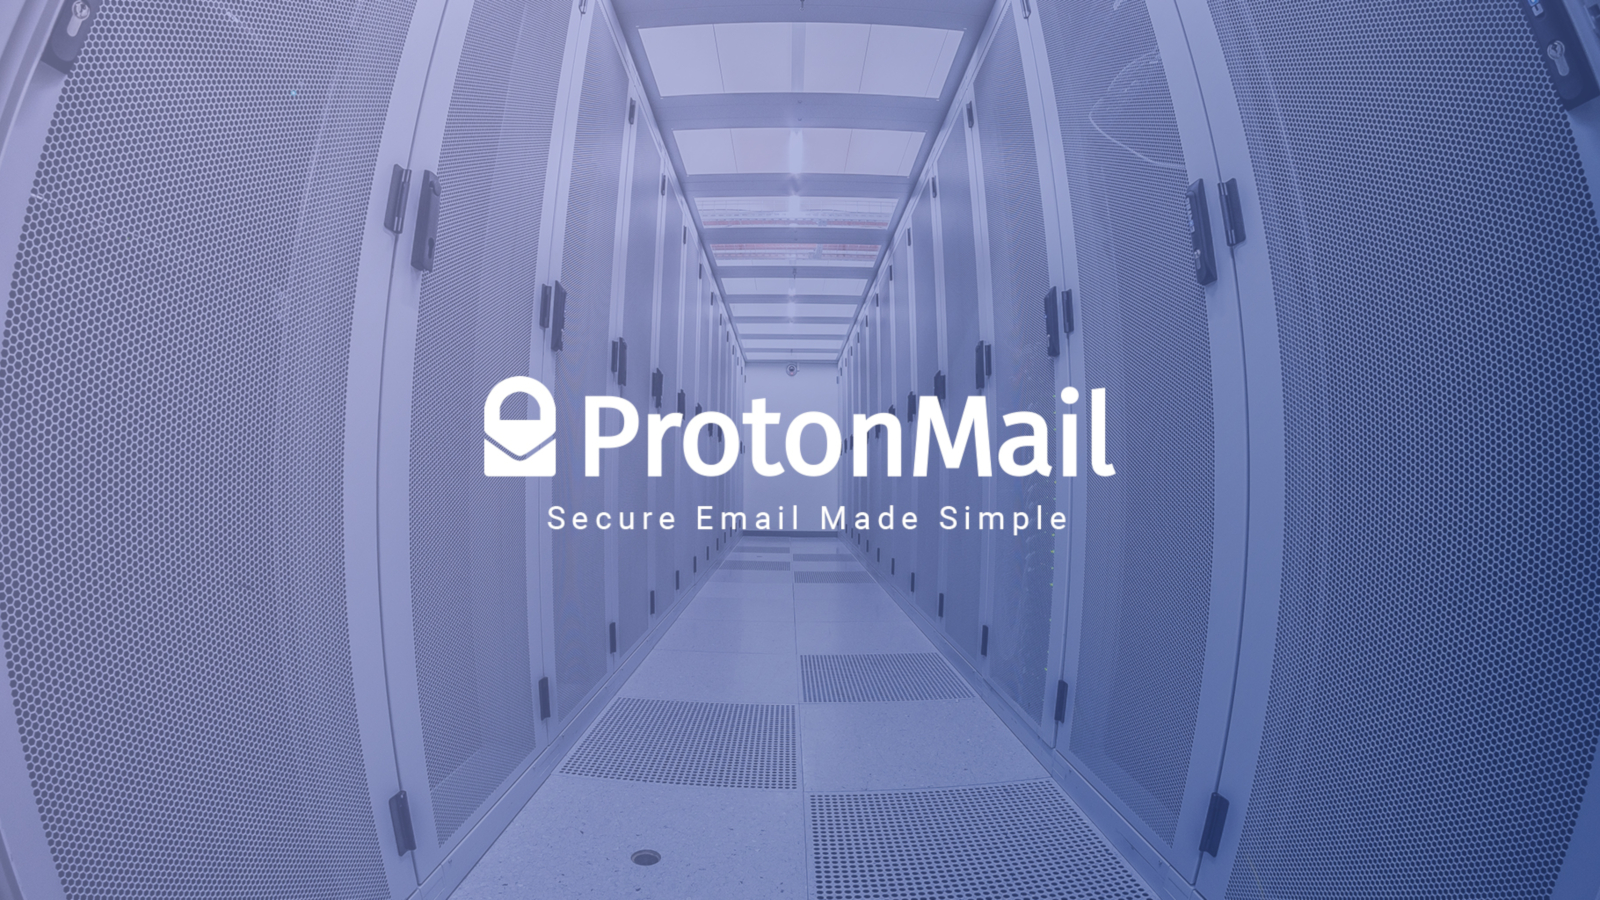 protonmail-corporate-server